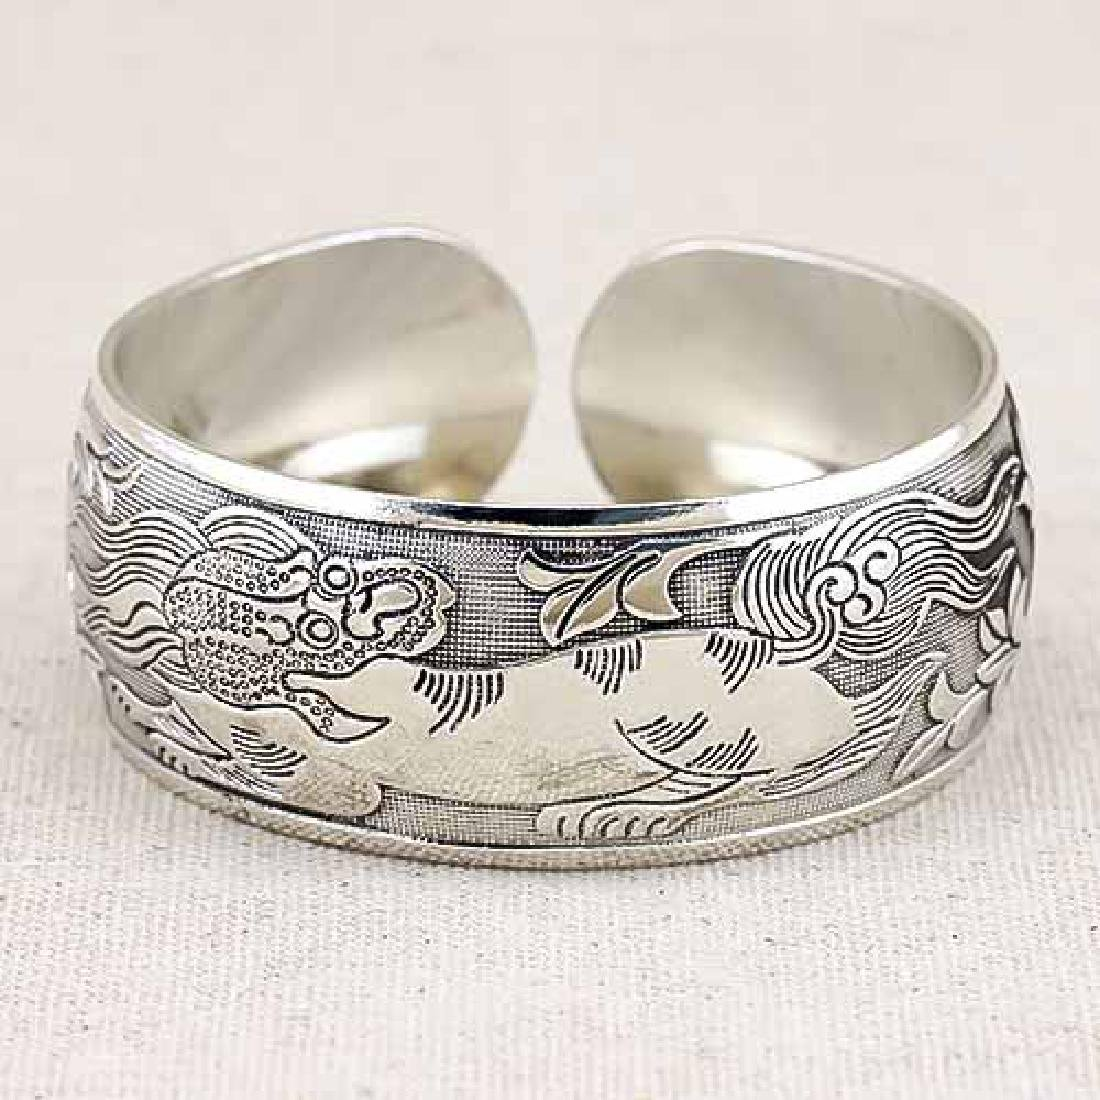 ANTIQUE SILVER ADJUSTABLE KYLIN BANGLE